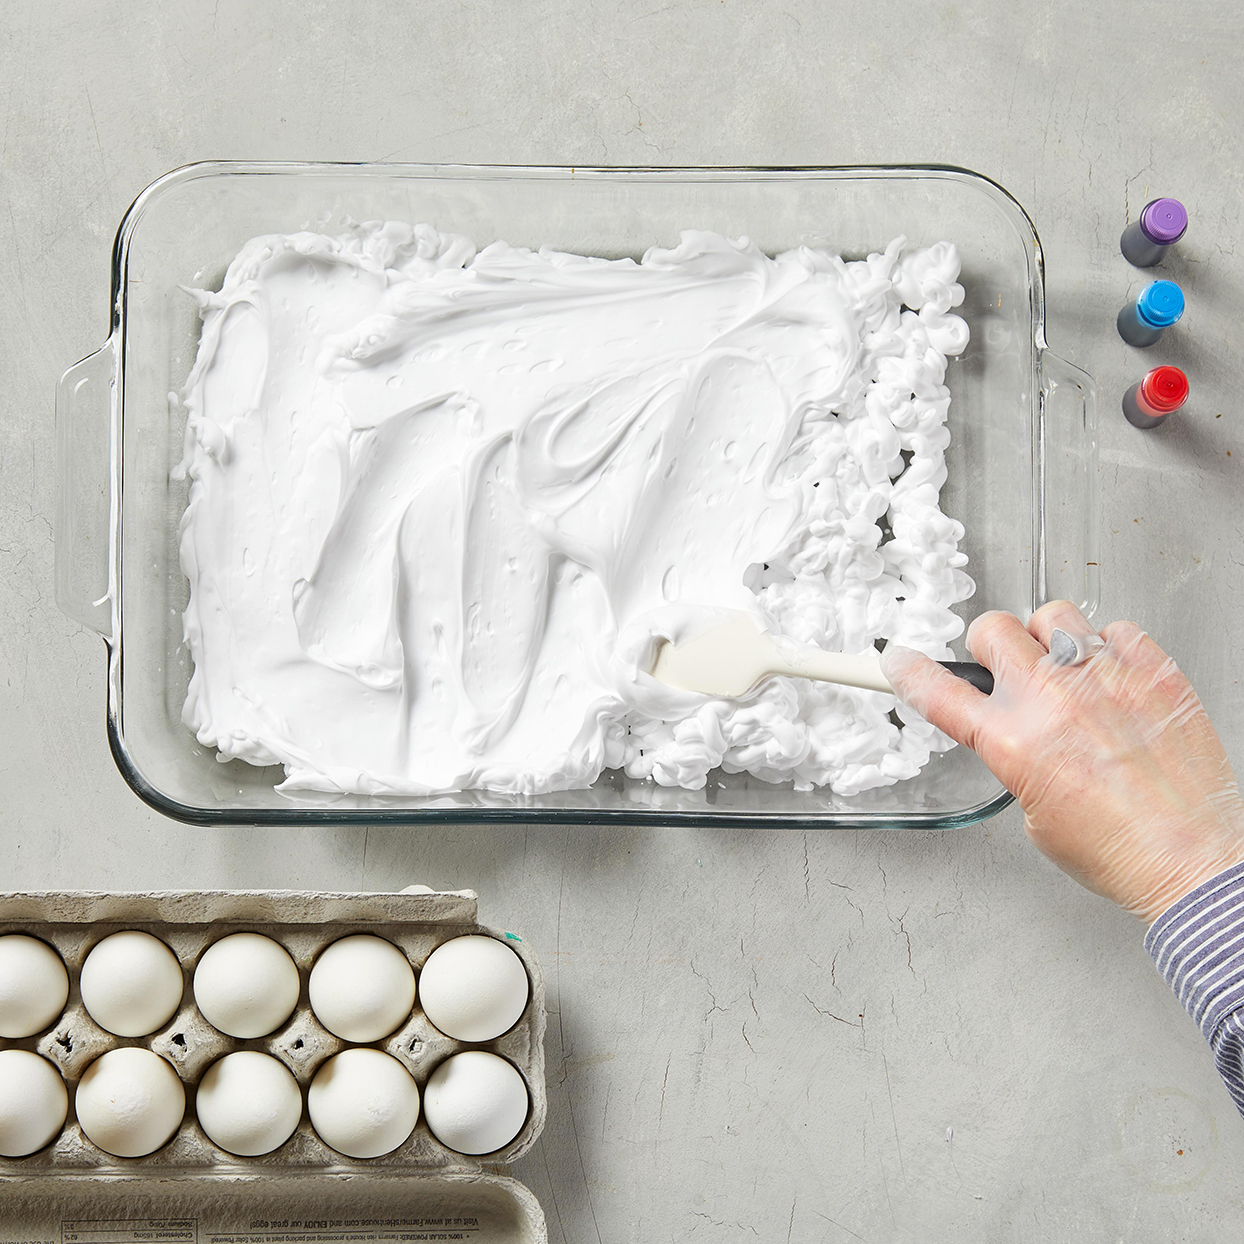 placing foam into glass dish for eggs